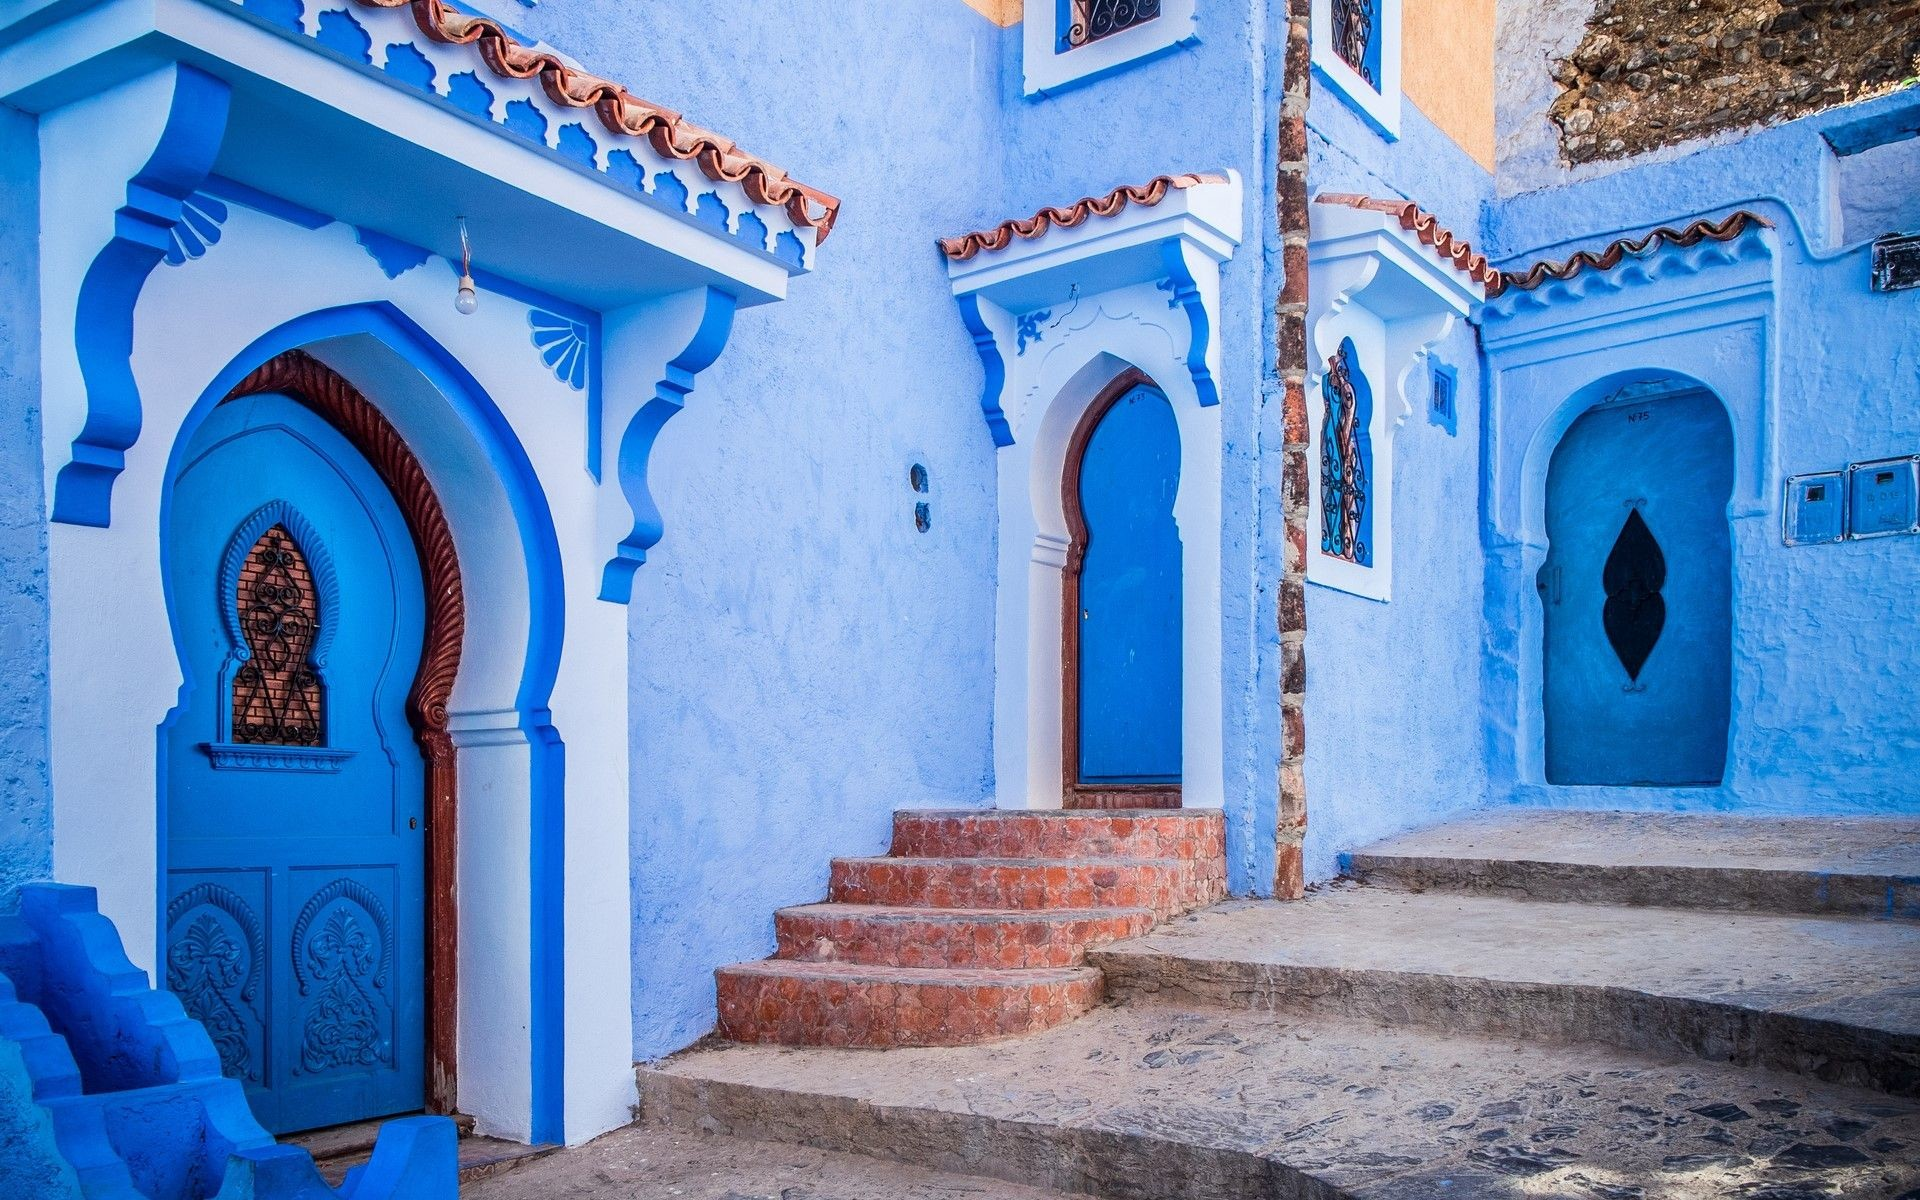 Res: 1920x1200, Image result for morocco wallpaper